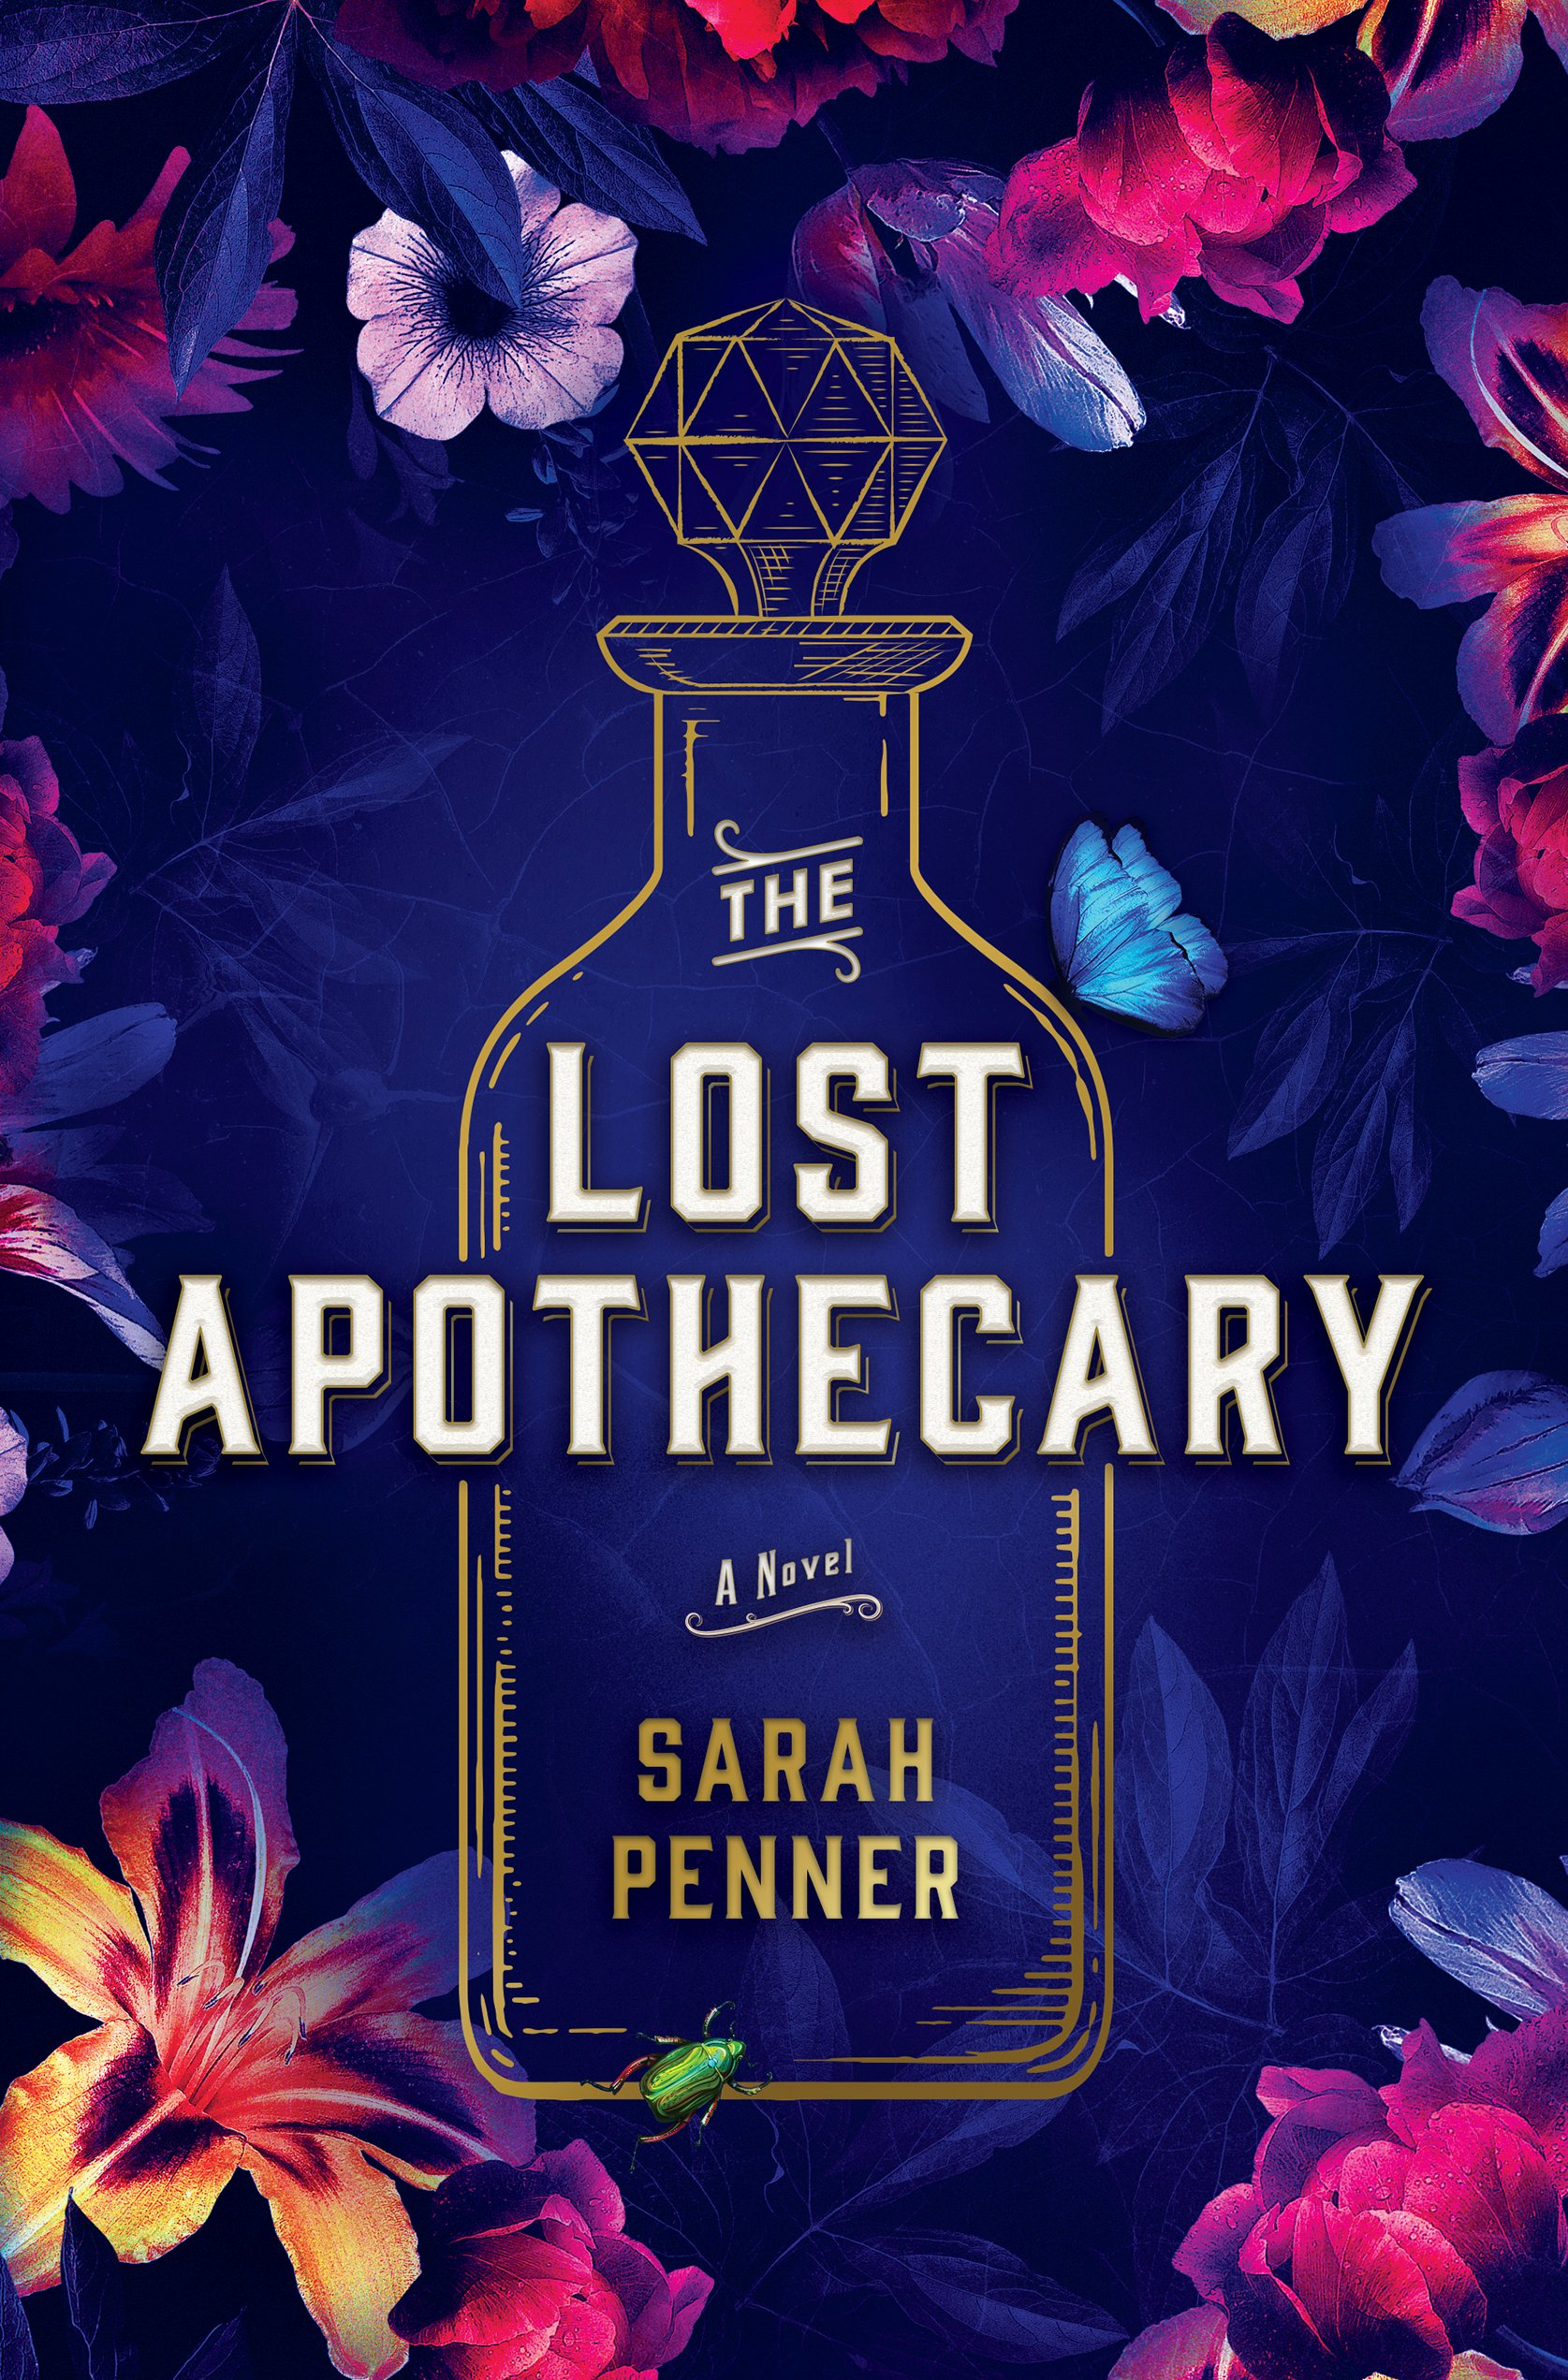 CURRENTLY READING: The Lost Apothecary – Sarah Penner